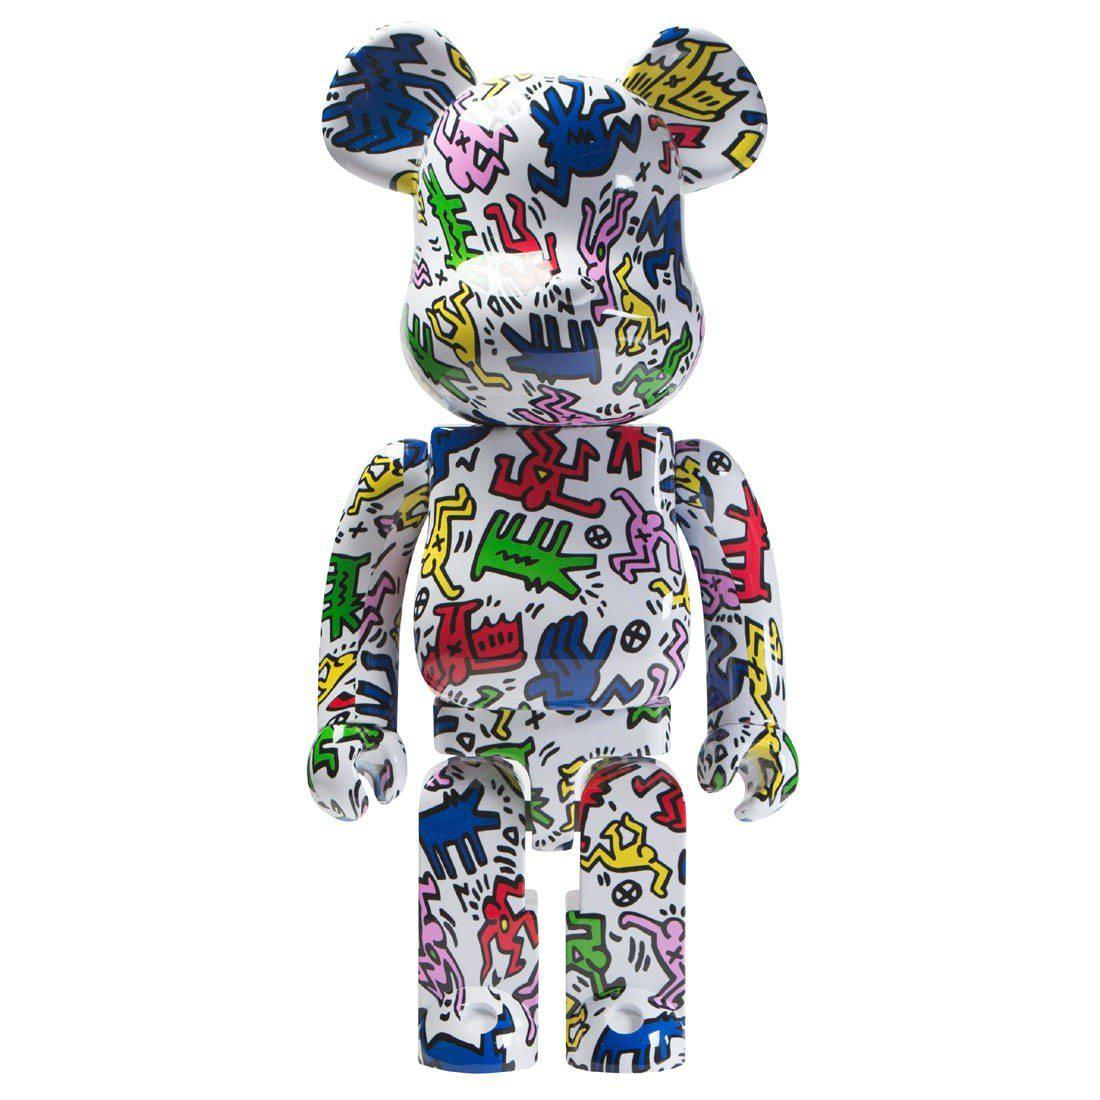 Keith Harring 1000%-Bearbrick-1000%-TorontoCollective